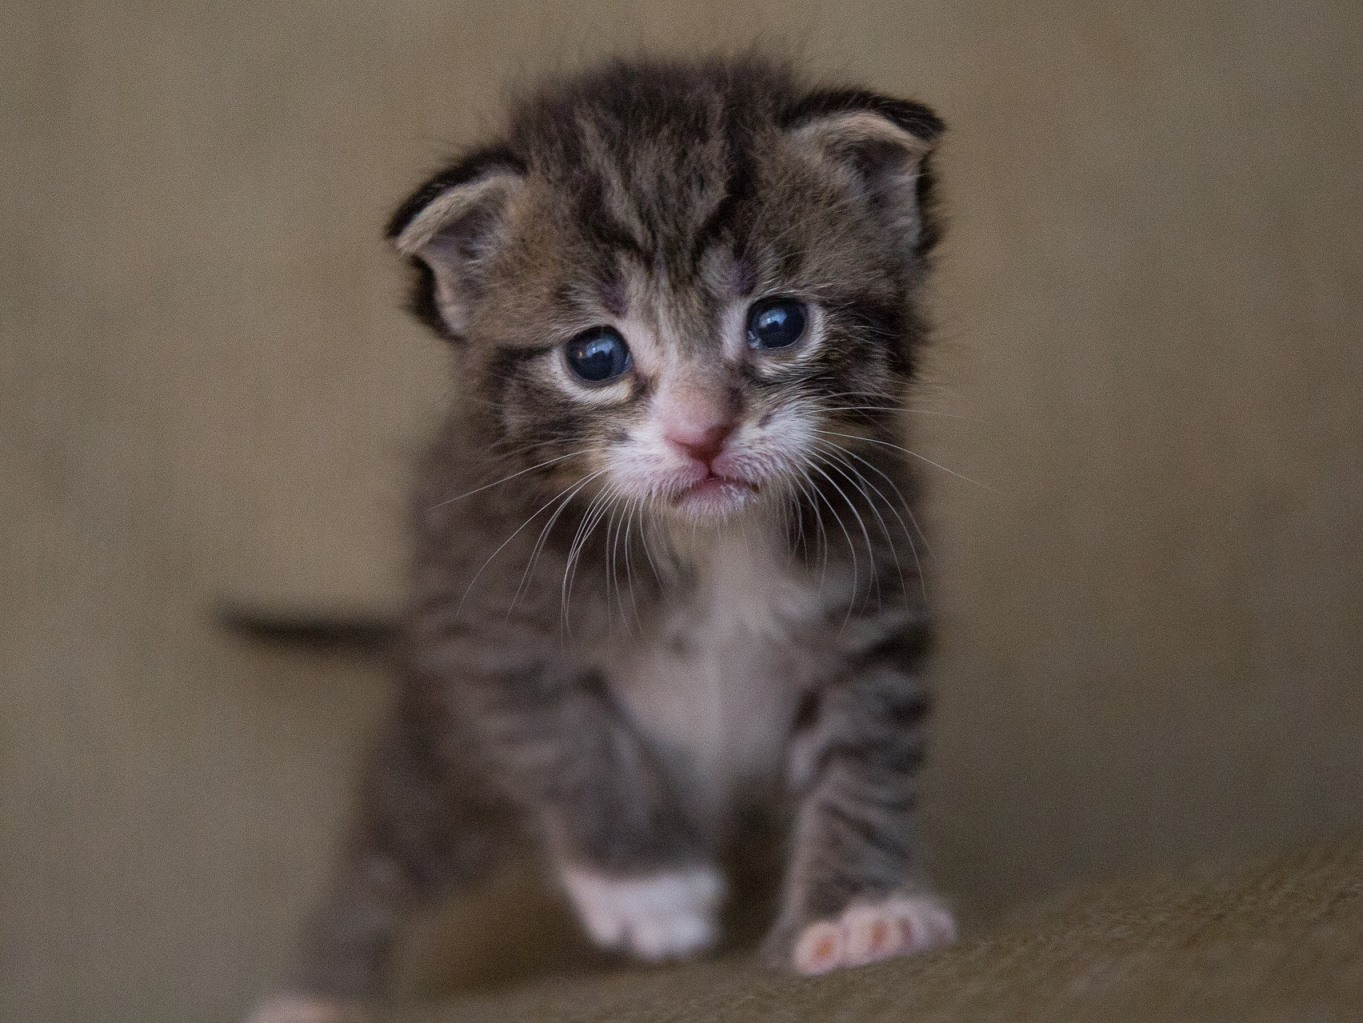 Puppies And Kittens Are Cute But To Neuter Is Cuter